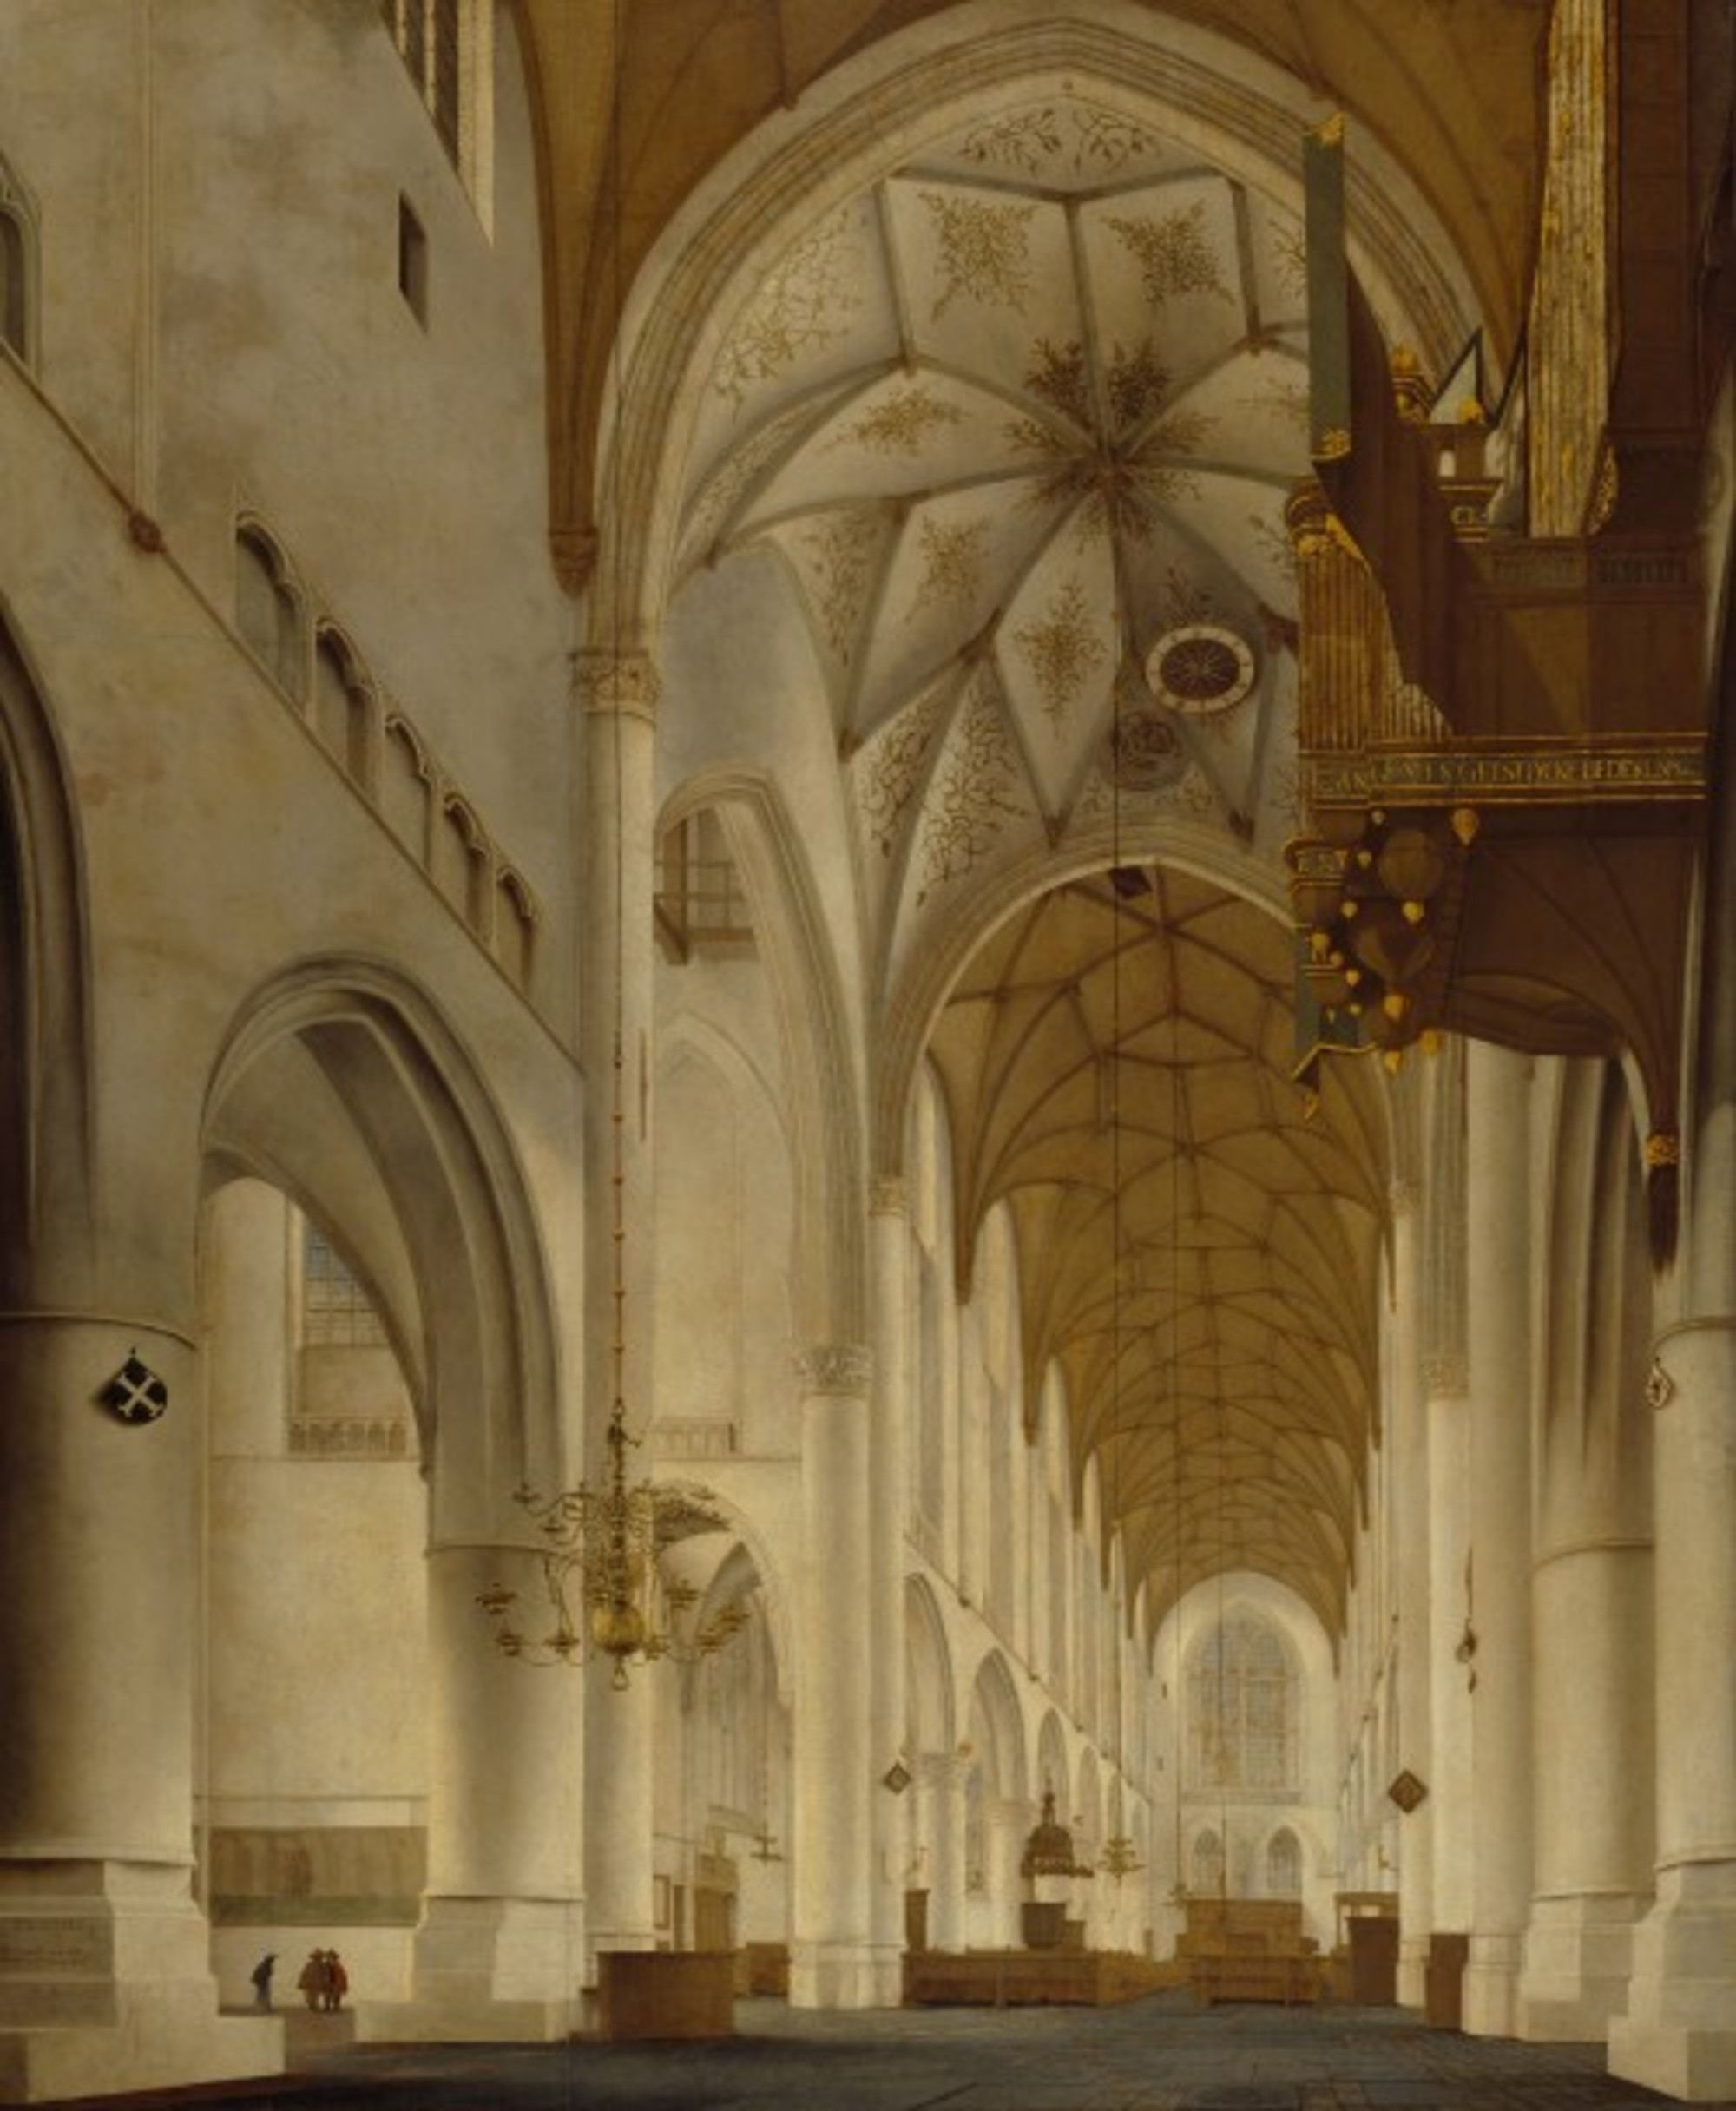 Pieter-Jansz.-Saenredam---The-Interior-of-St-Bavos-Church-Haarlem-the-Grote-Kerk---Google-Art-Project.jpg